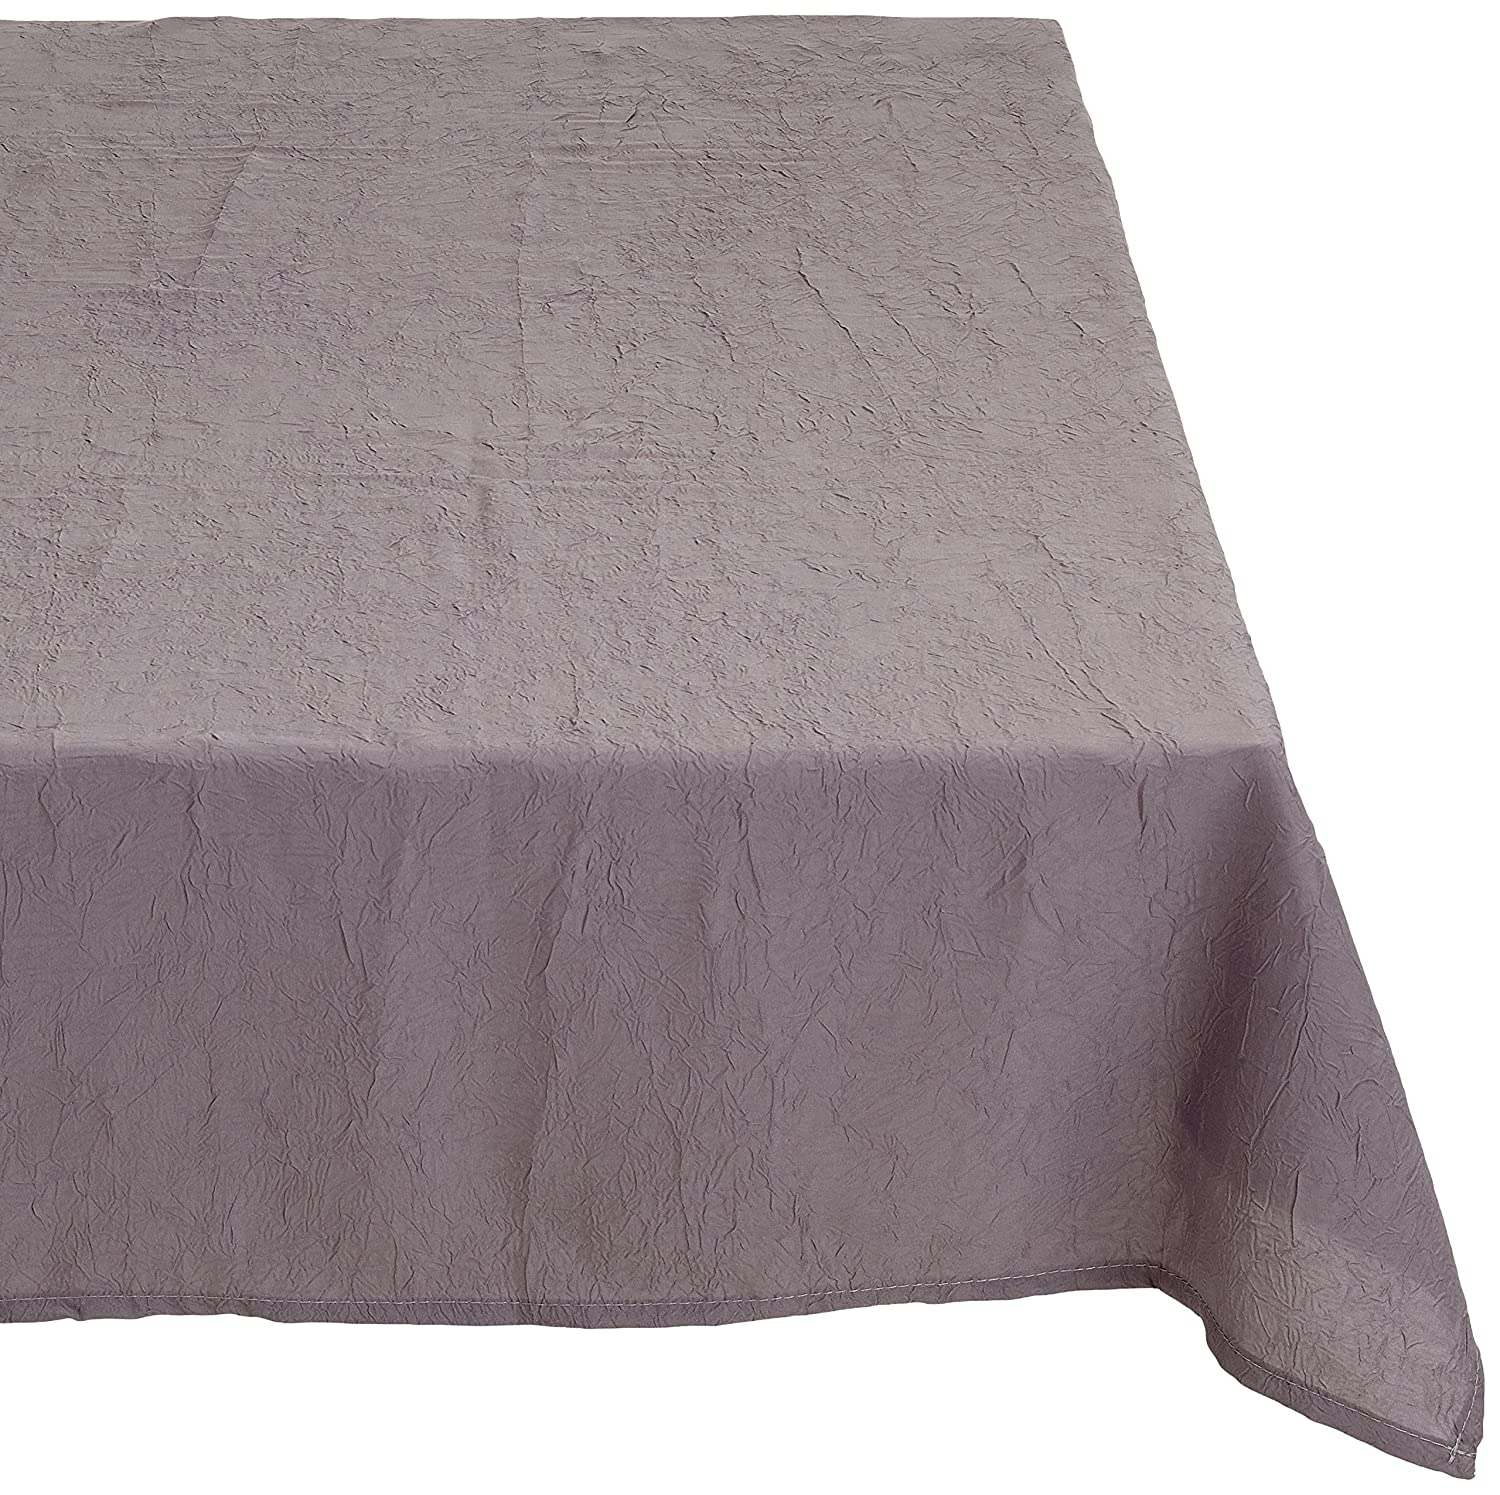 9bbd834b9ed868 ... Calitex S5D23GN661A Taffetas Froisse Nappe Polyester Taupe 180 x 180 cm  ...